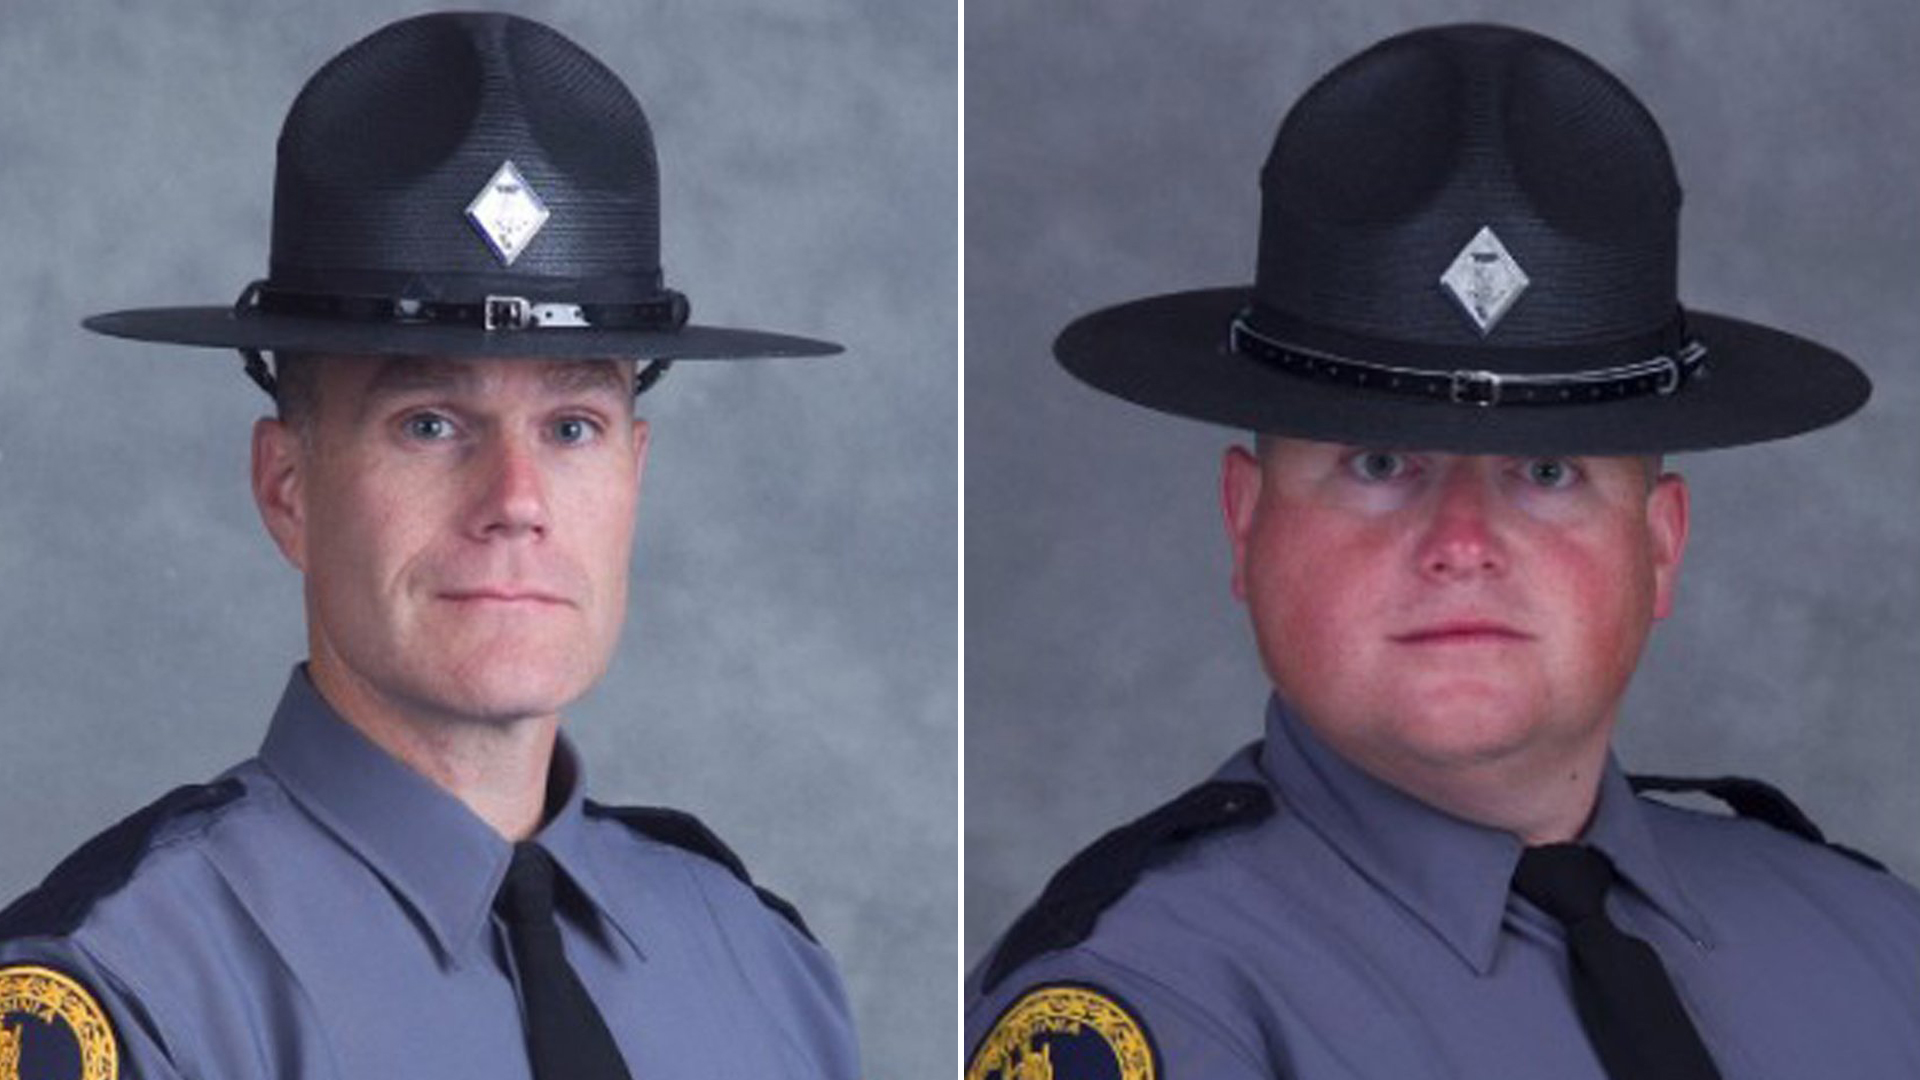 Virginia State Police Lt. H. Jay Cullen, left, and Trooper-Pilot Berke M.M. Bates are seen in photos released by the Virginia State Police on Aug. 12, 2017.